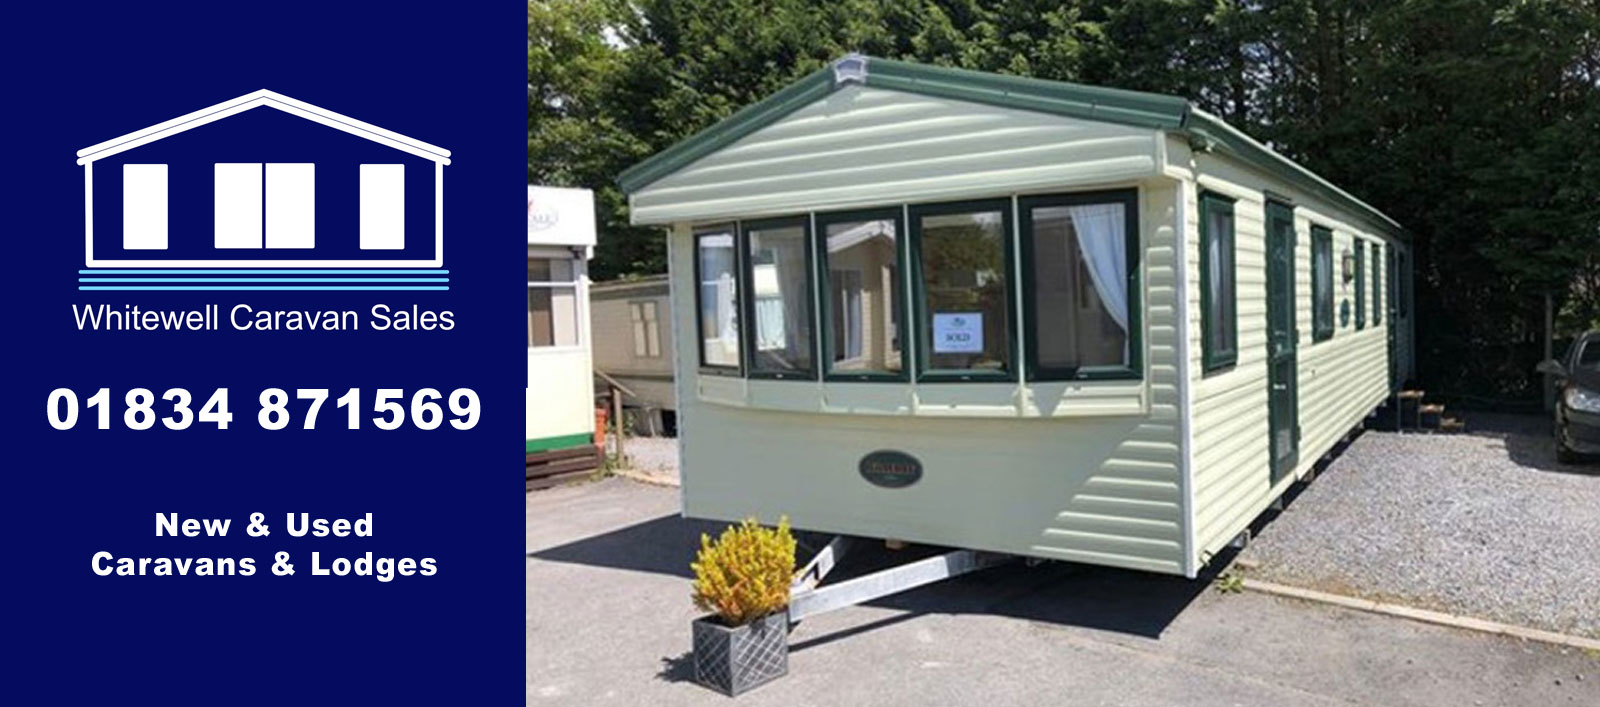 caravans-for-sale3